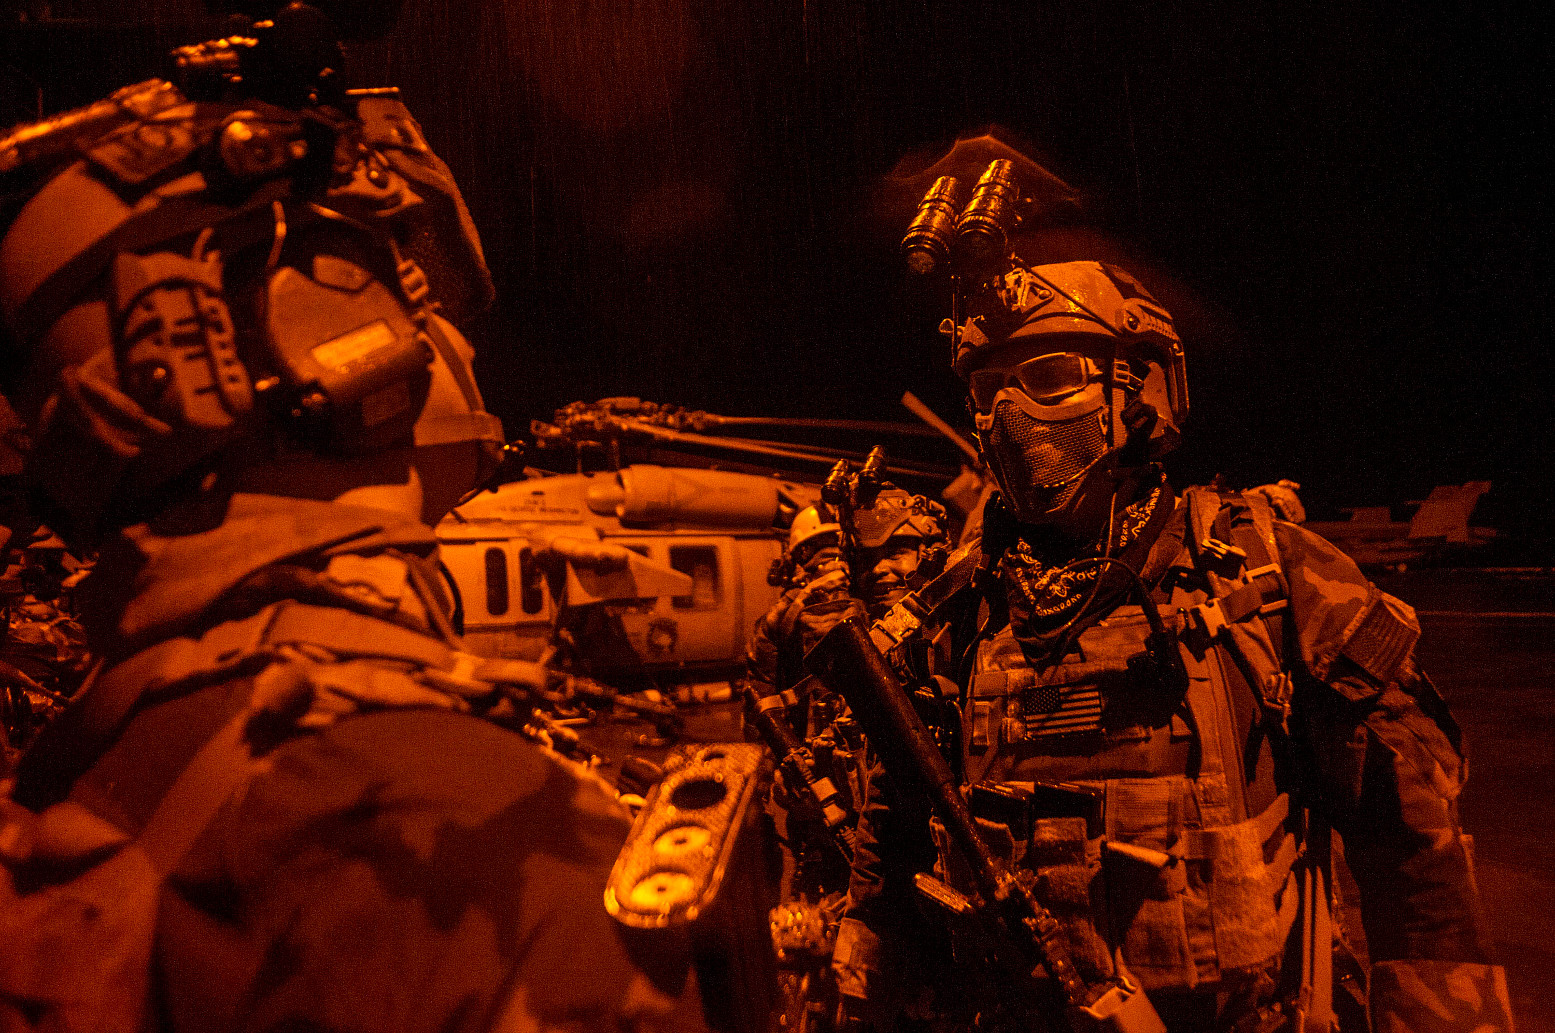 Seeing Through Walls? The New Tech U.S. Special Forces Want